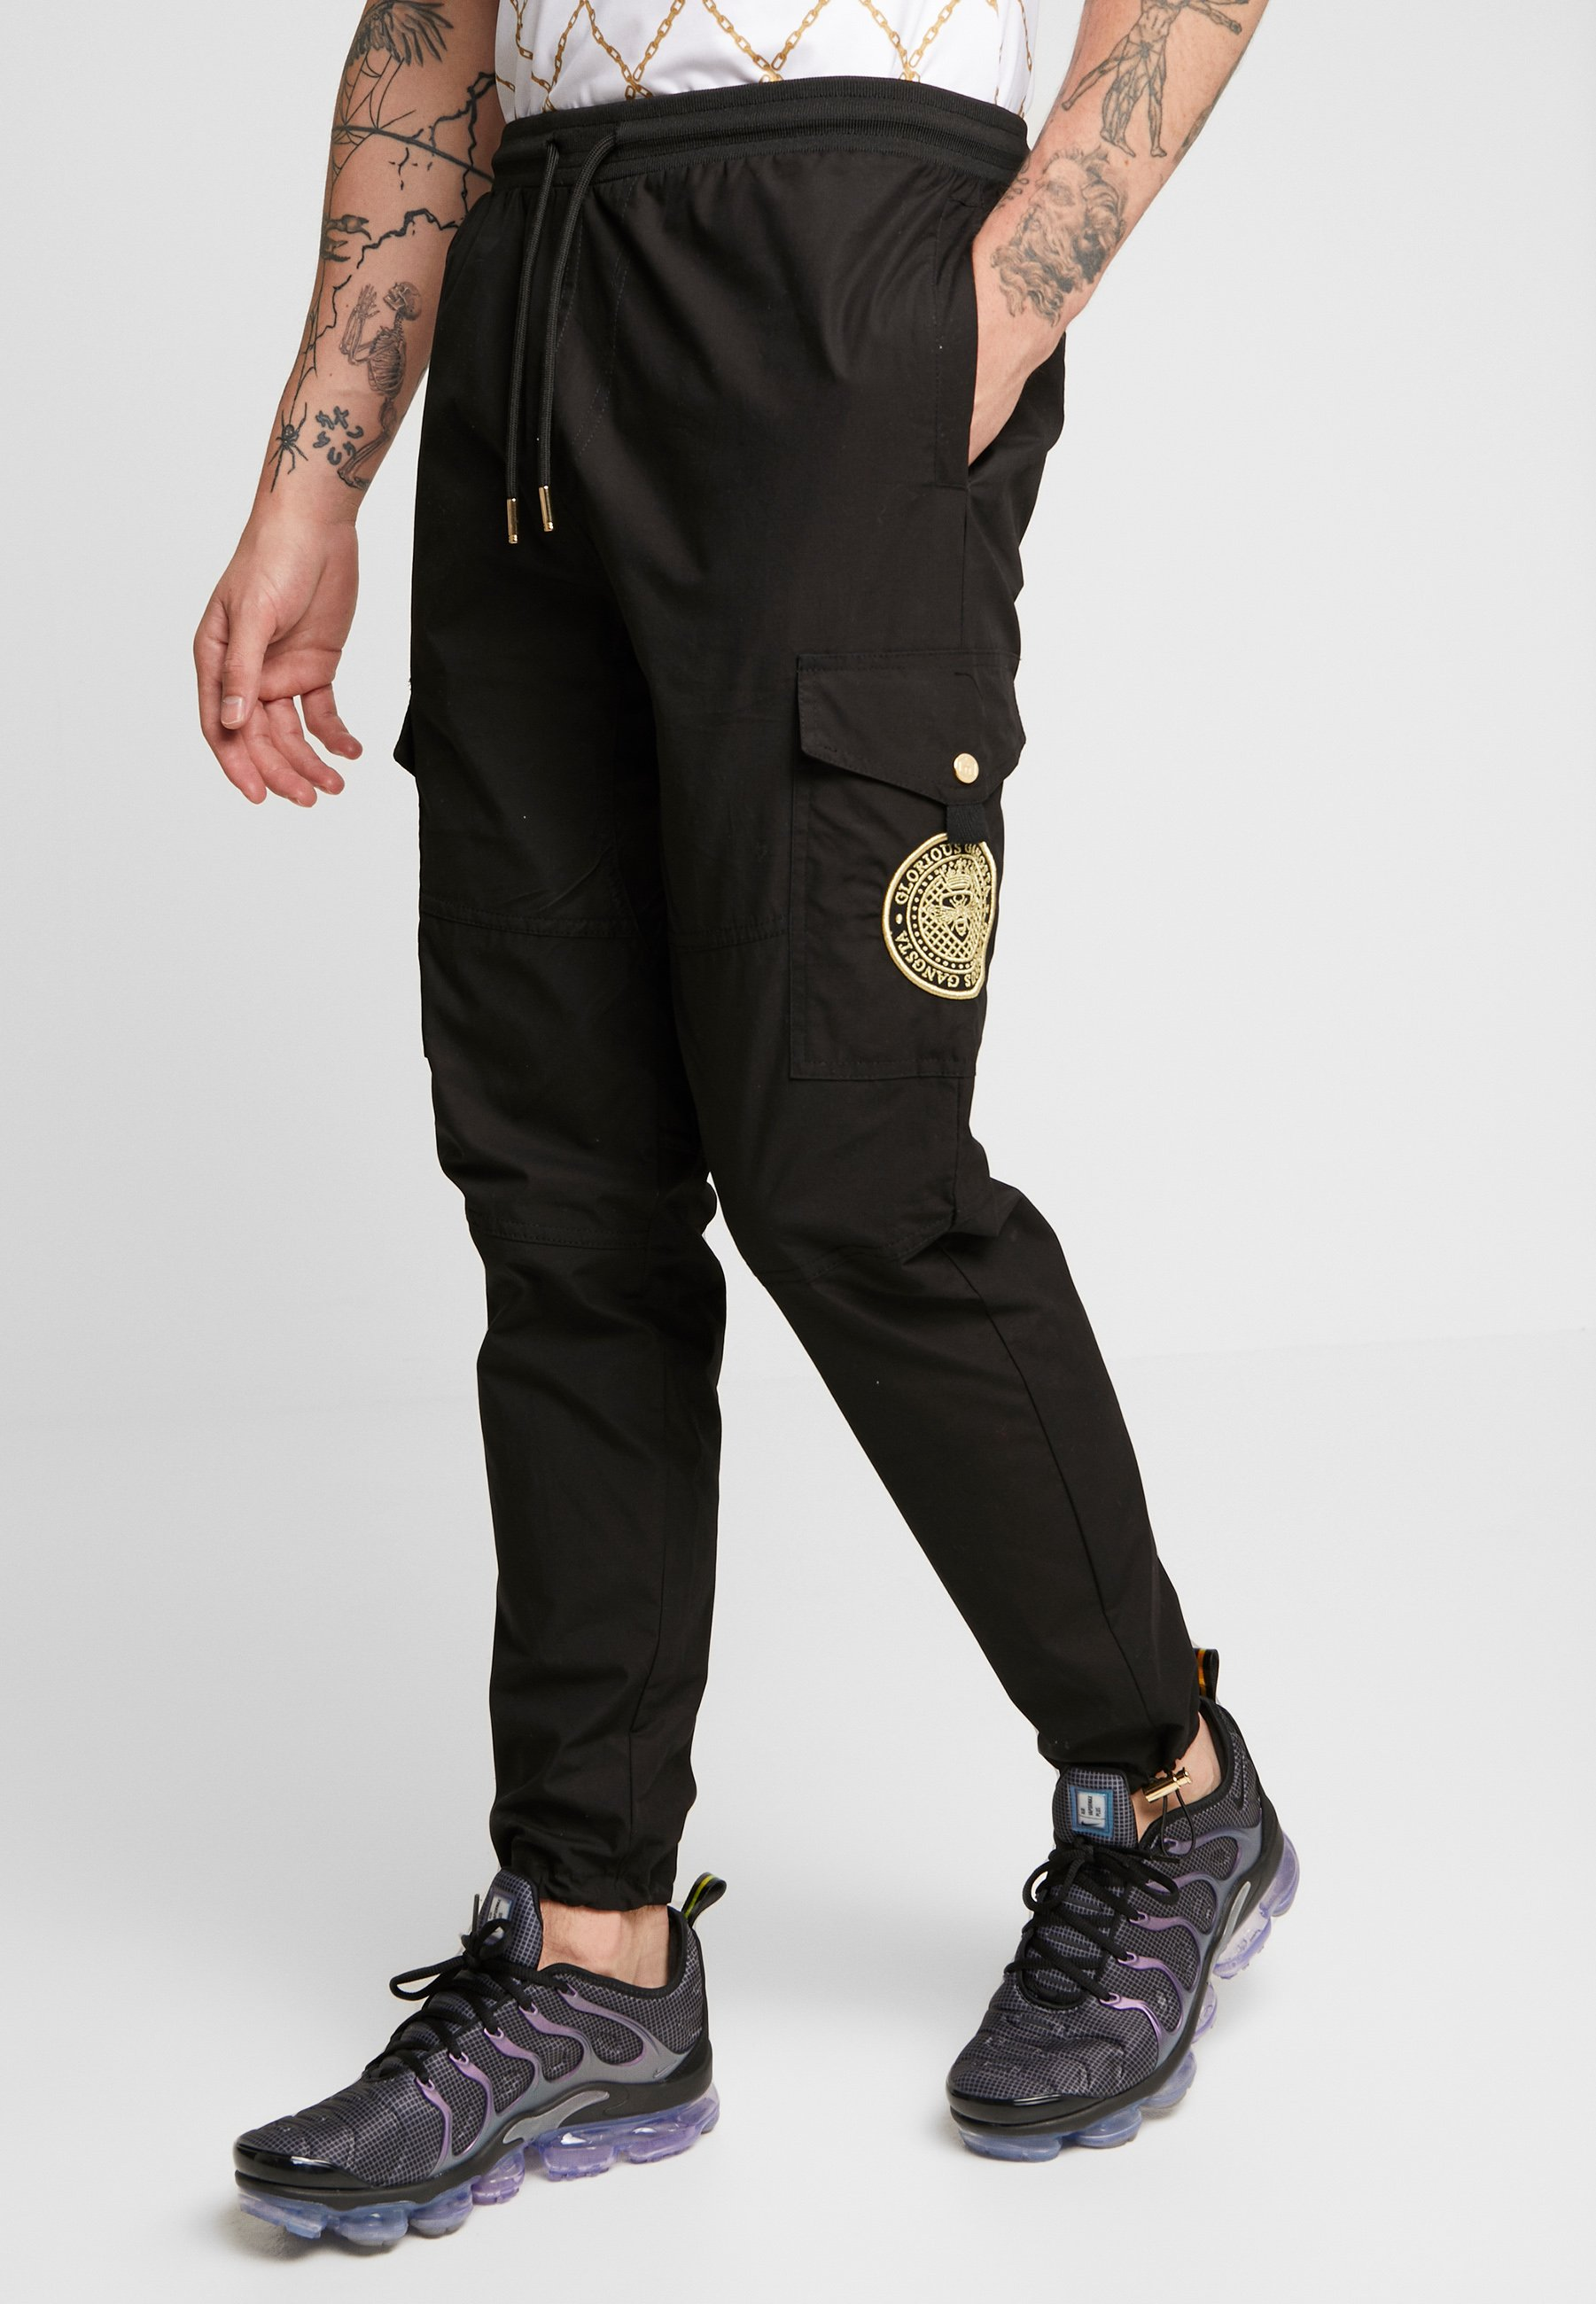 FresnoPantalon Cargo Glorious Black Gangsta Gangsta Glorious 0O8nkwP